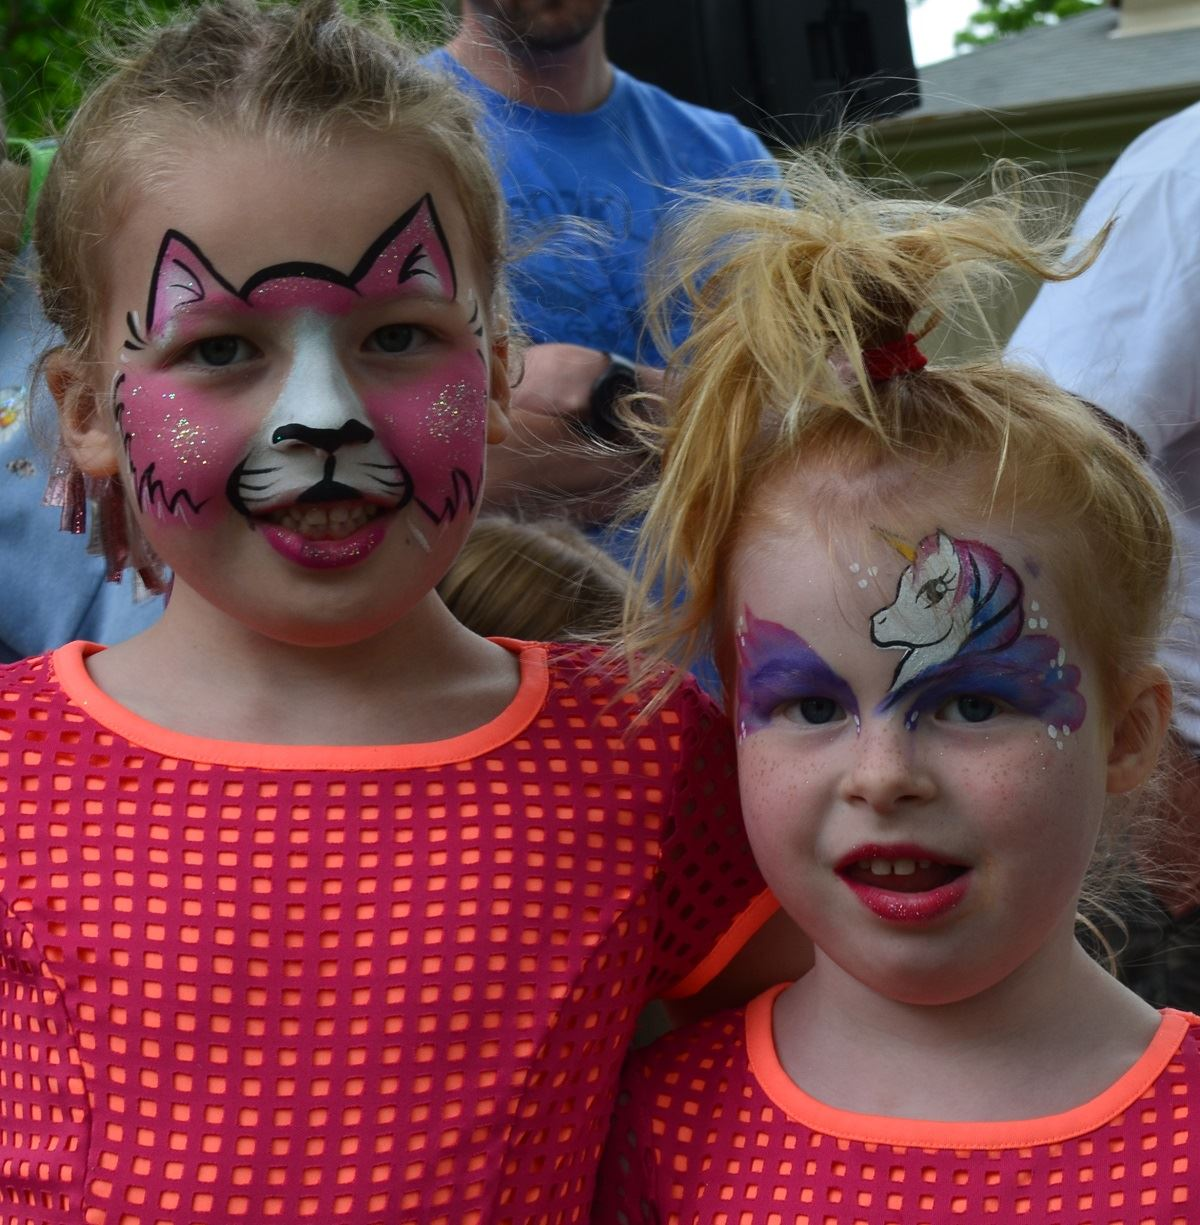 Fun Zone Girls with Faces Painted